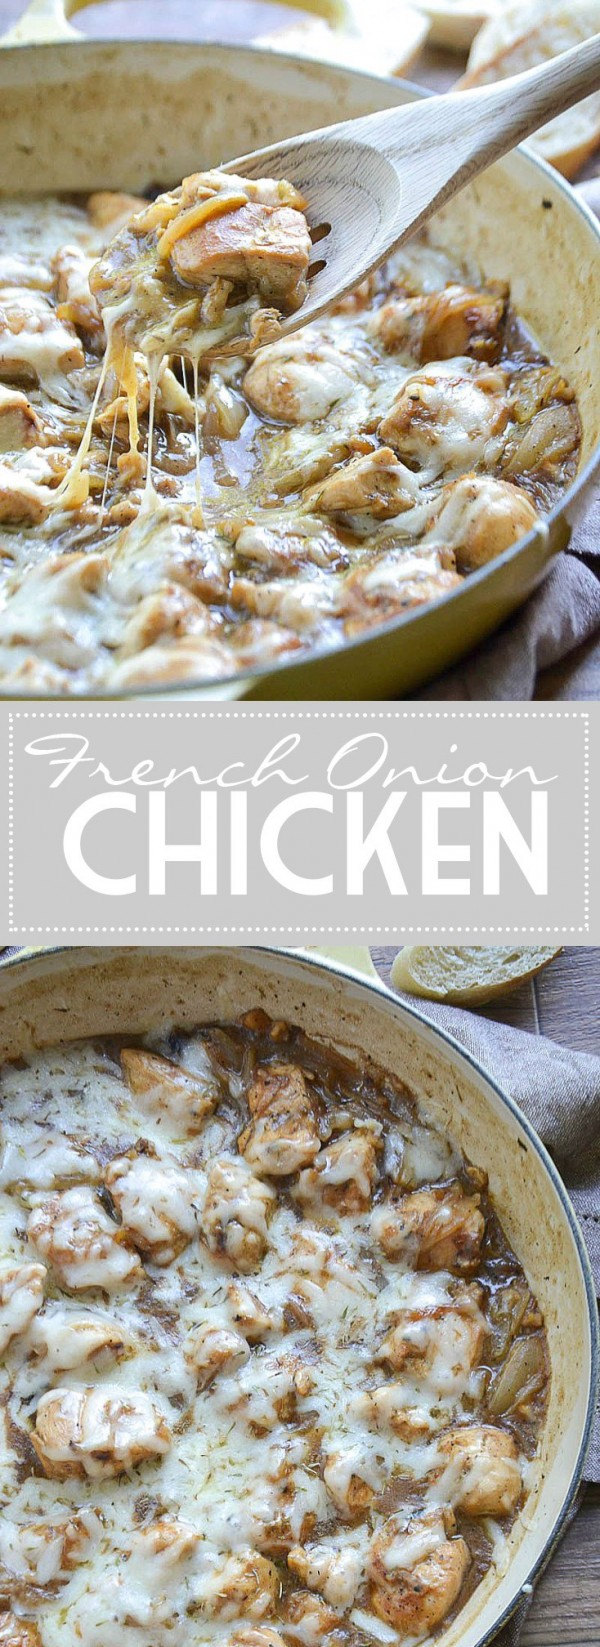 Get the recipe French Onion Chicken @recipes_to_go